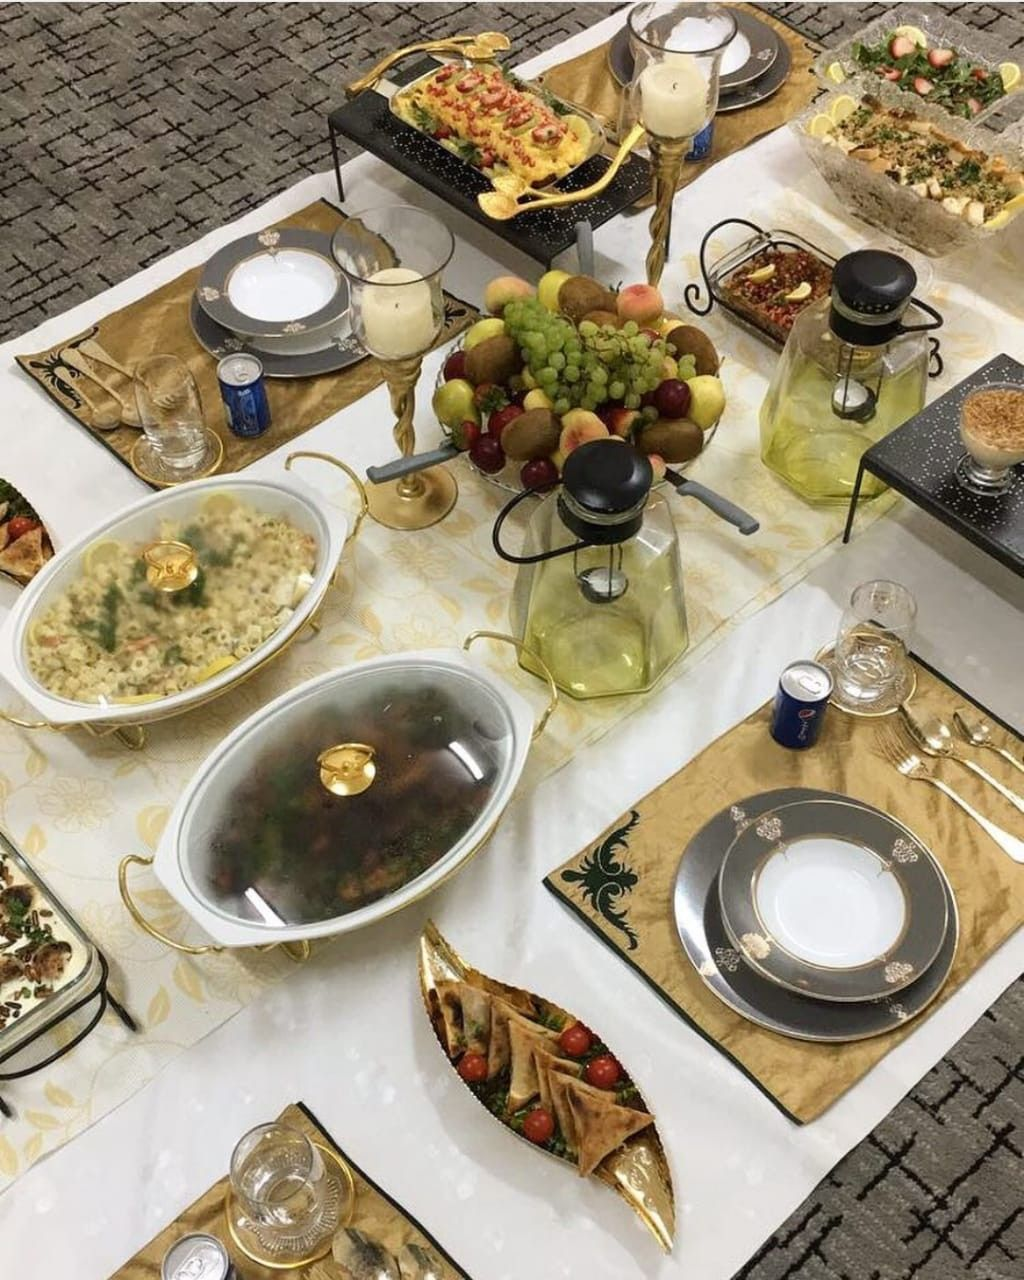 Pin By Haidy On ضيافه و تقديمات Dinner Party Recipes Food Decoration Snap Food